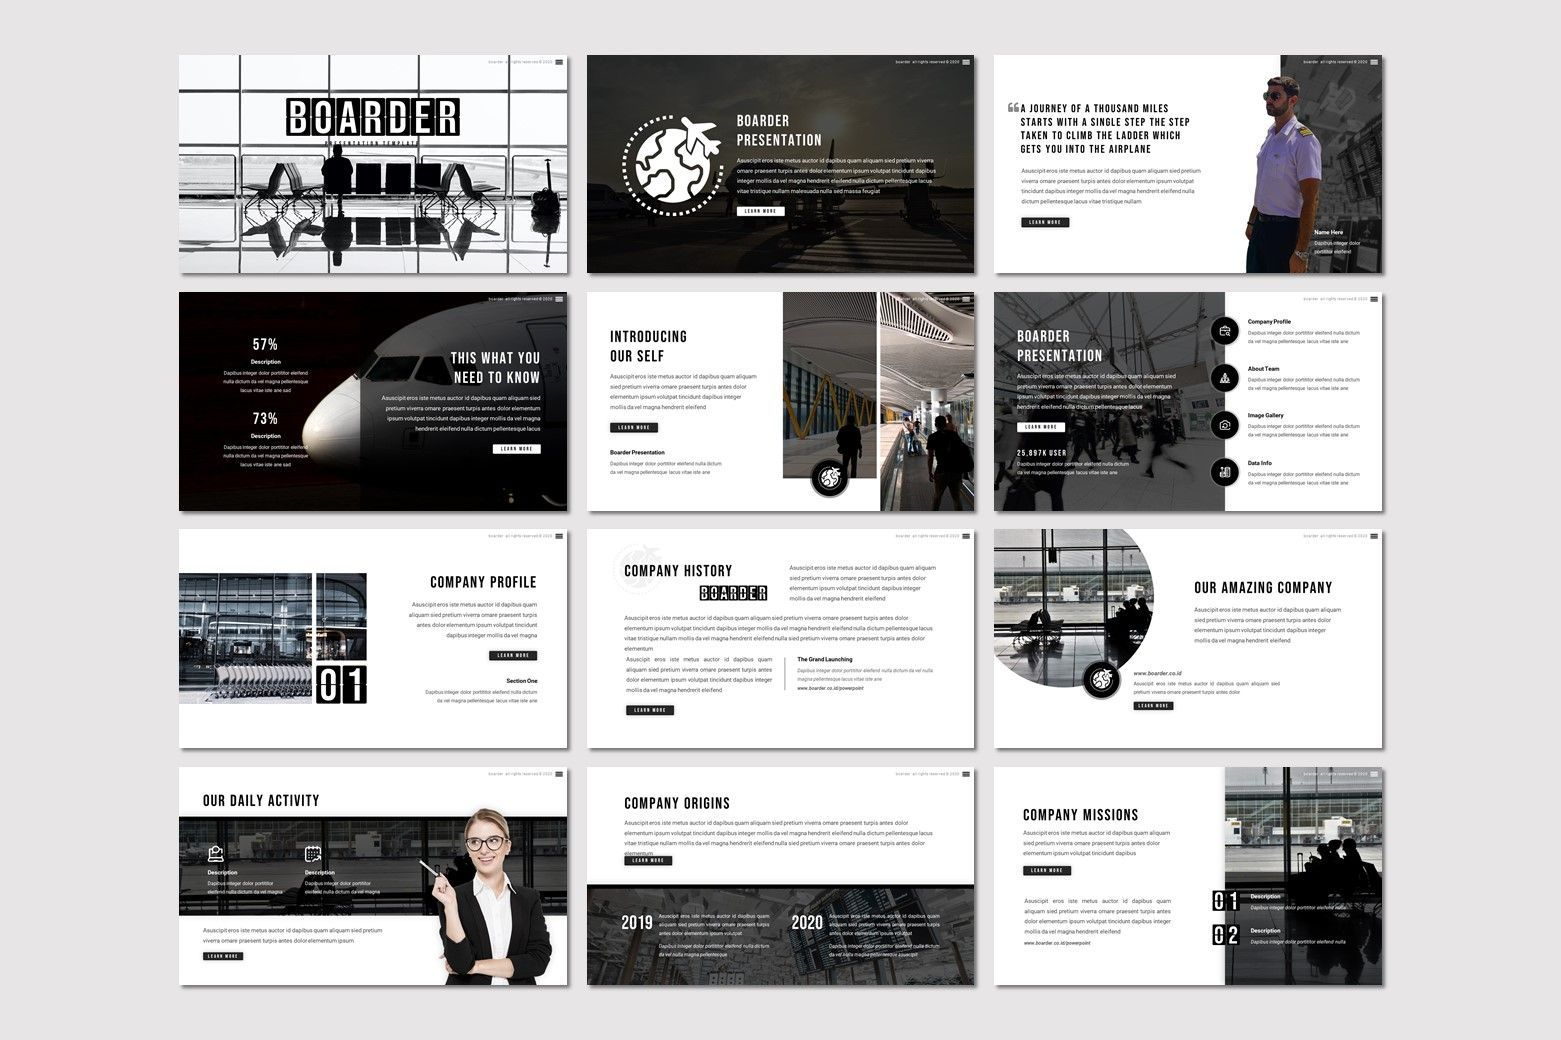 Boarder - Powerpoint Template, Slide 2, 07758, Presentation Templates — PoweredTemplate.com